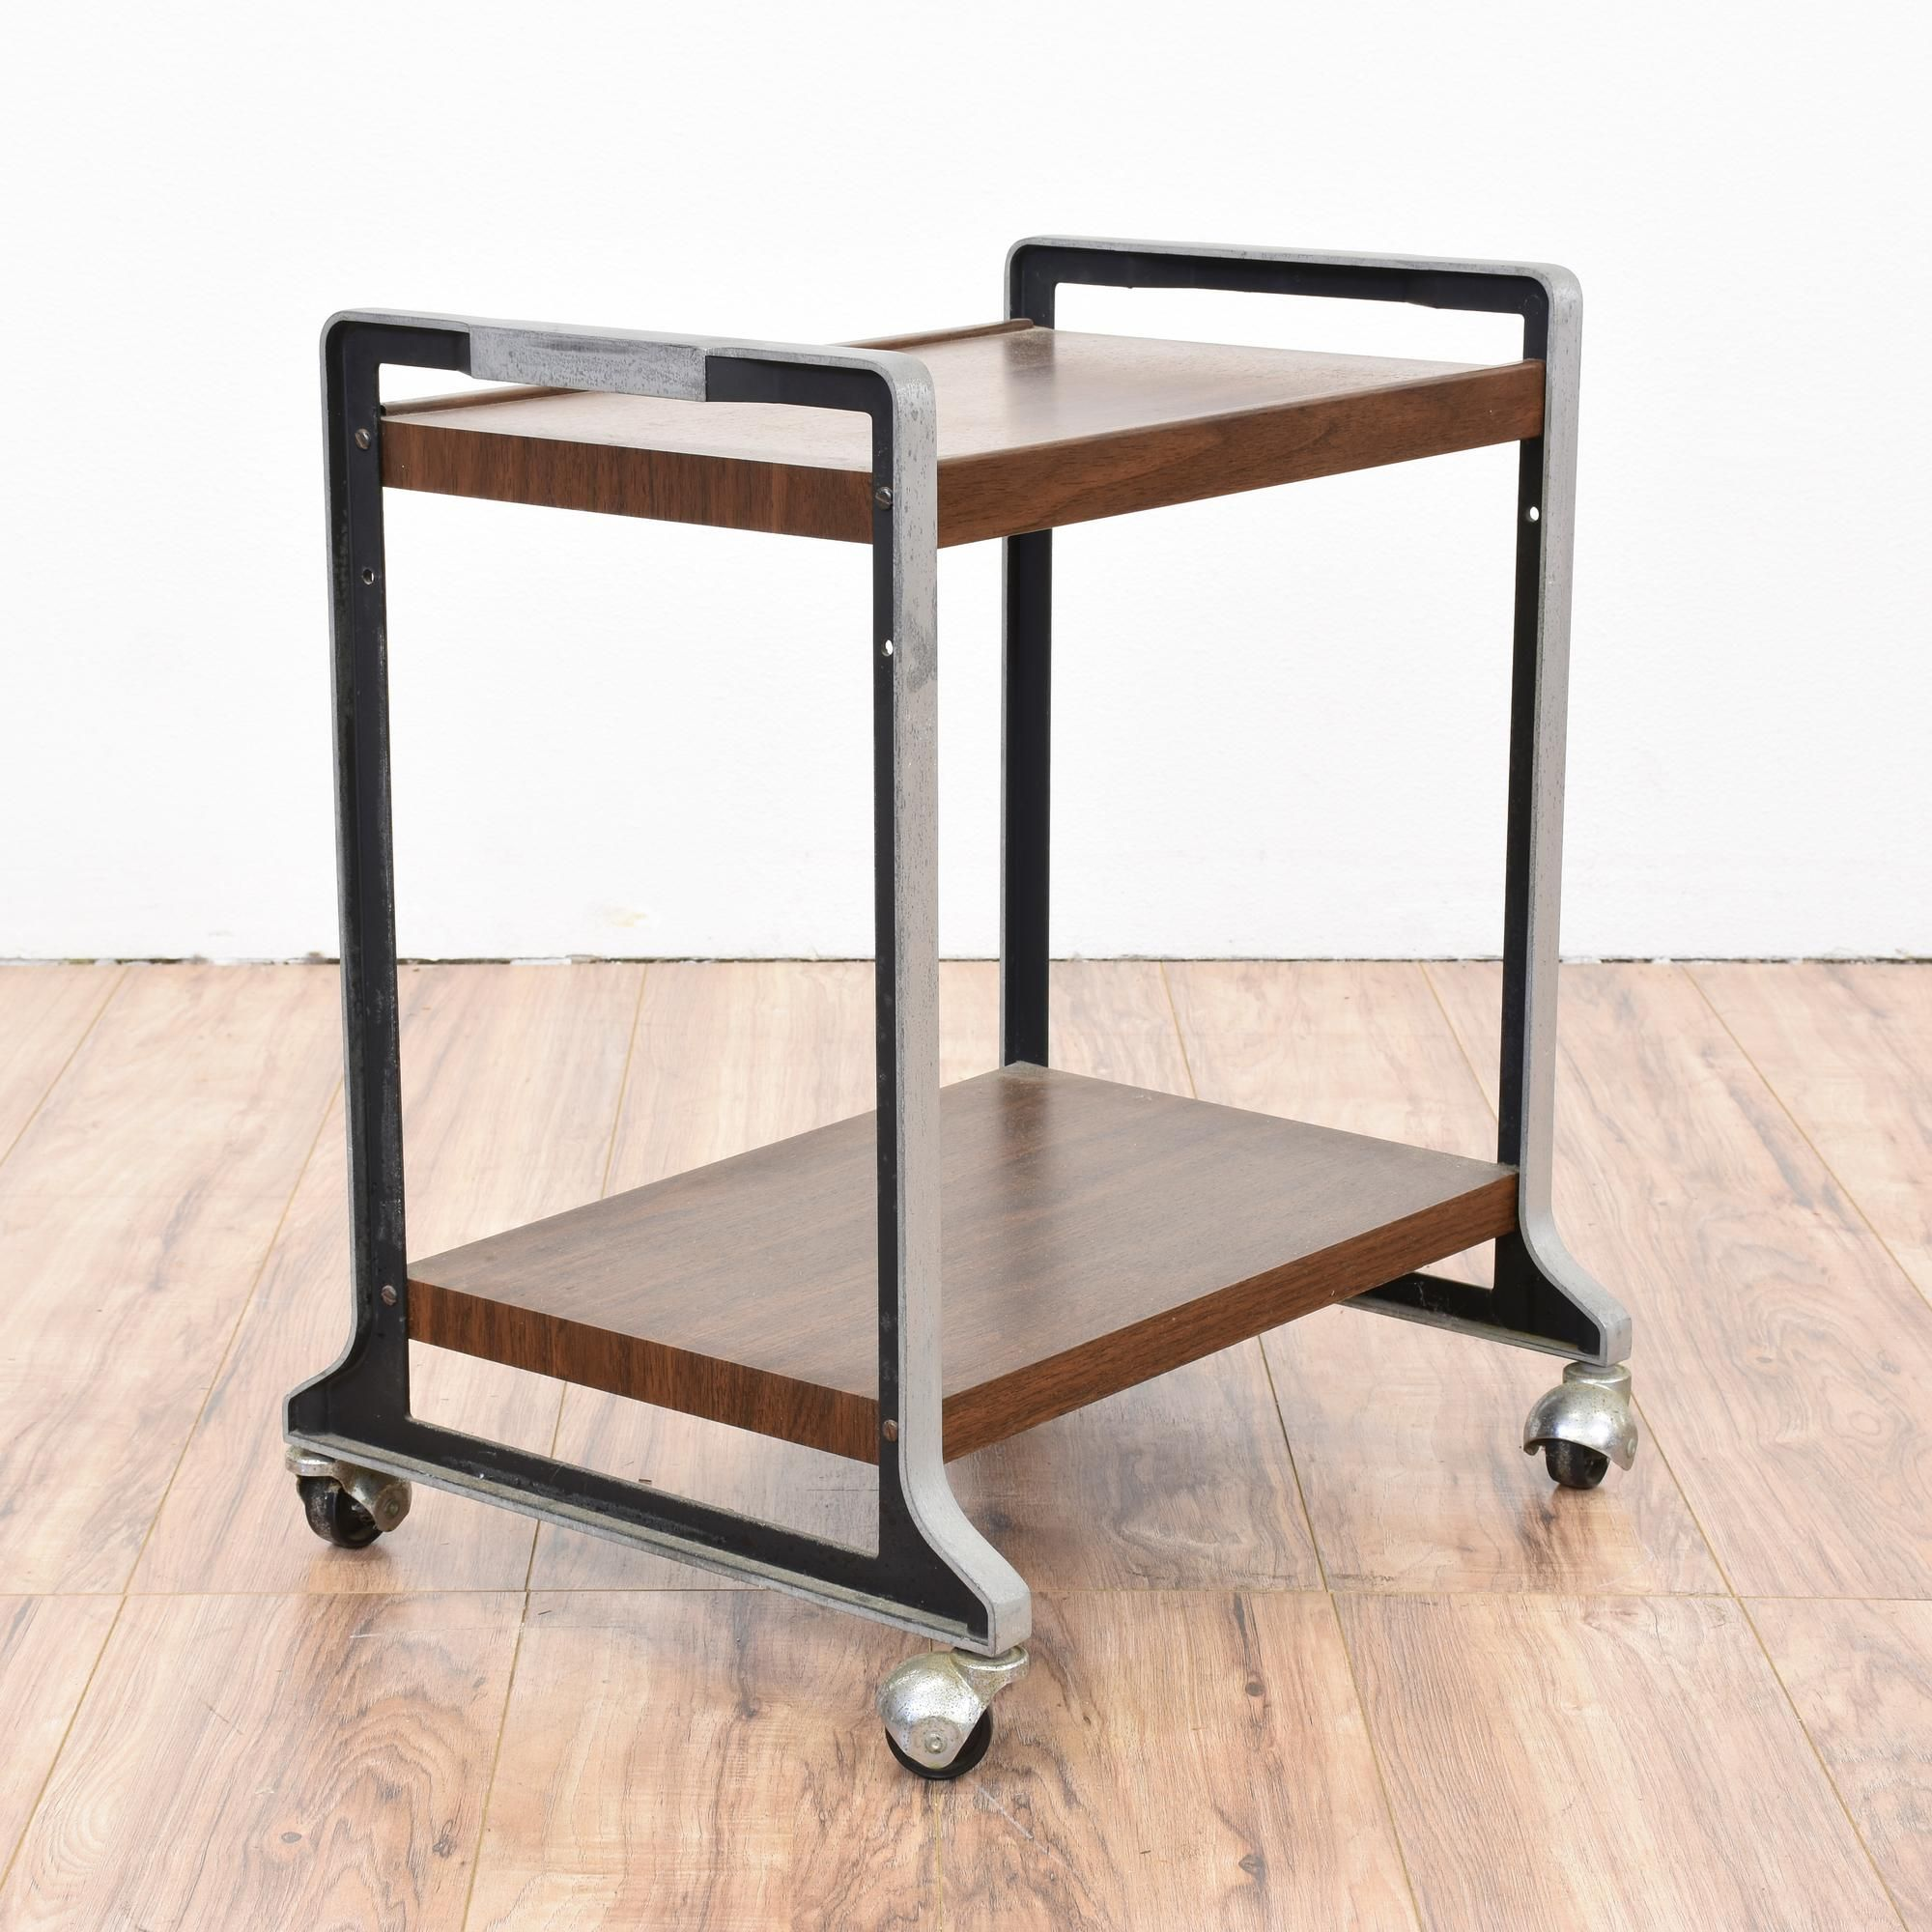 This Industrial Office Cart Is Featured In A Metal With A Retro Steel  Finish. This Rolling Cart Is In Great Vintage Condition With 2 Wood Shelves  With A ...